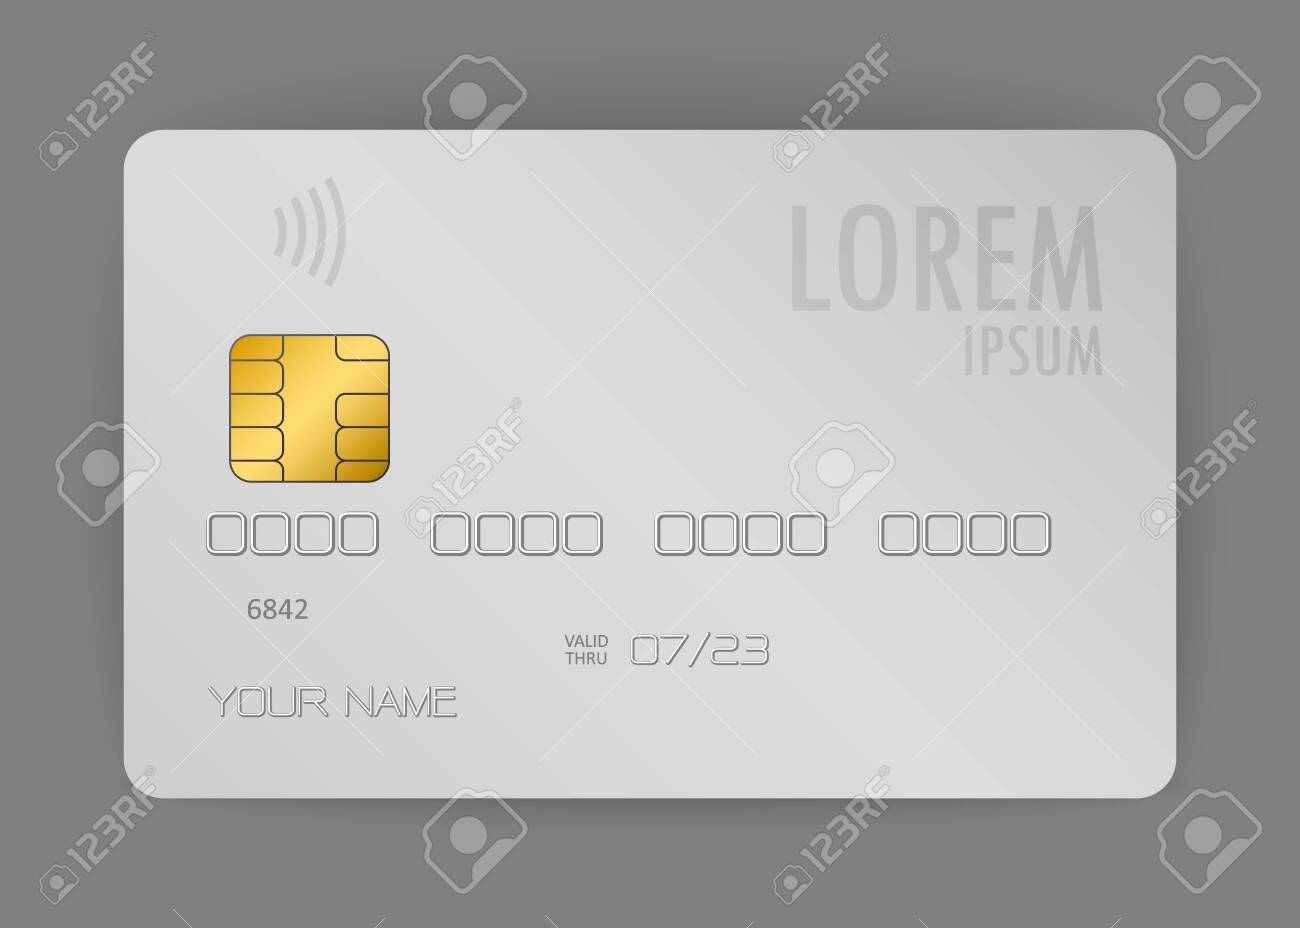 vector realistic credit card, realistic electronic card used to pay at the store - 138528011